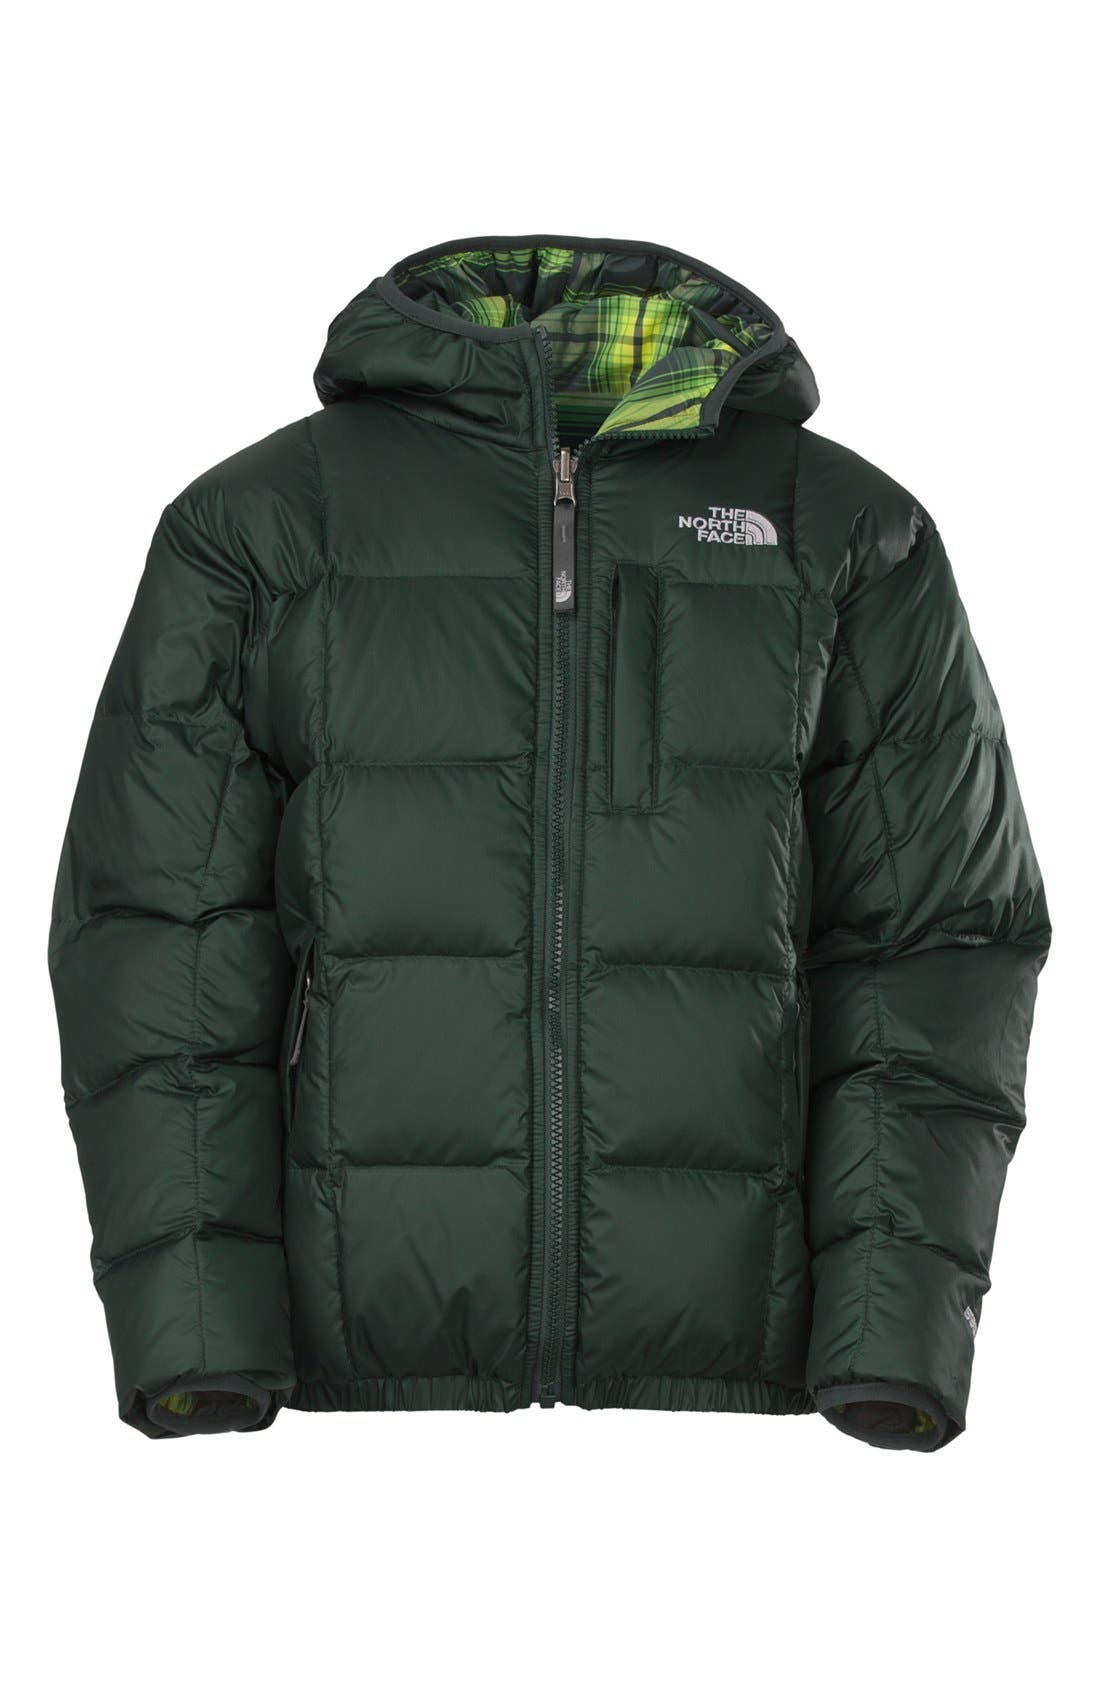 Main Image - The North Face 'Moondoggy' Reversible Down Jacket (Little Boys & Big Boys)